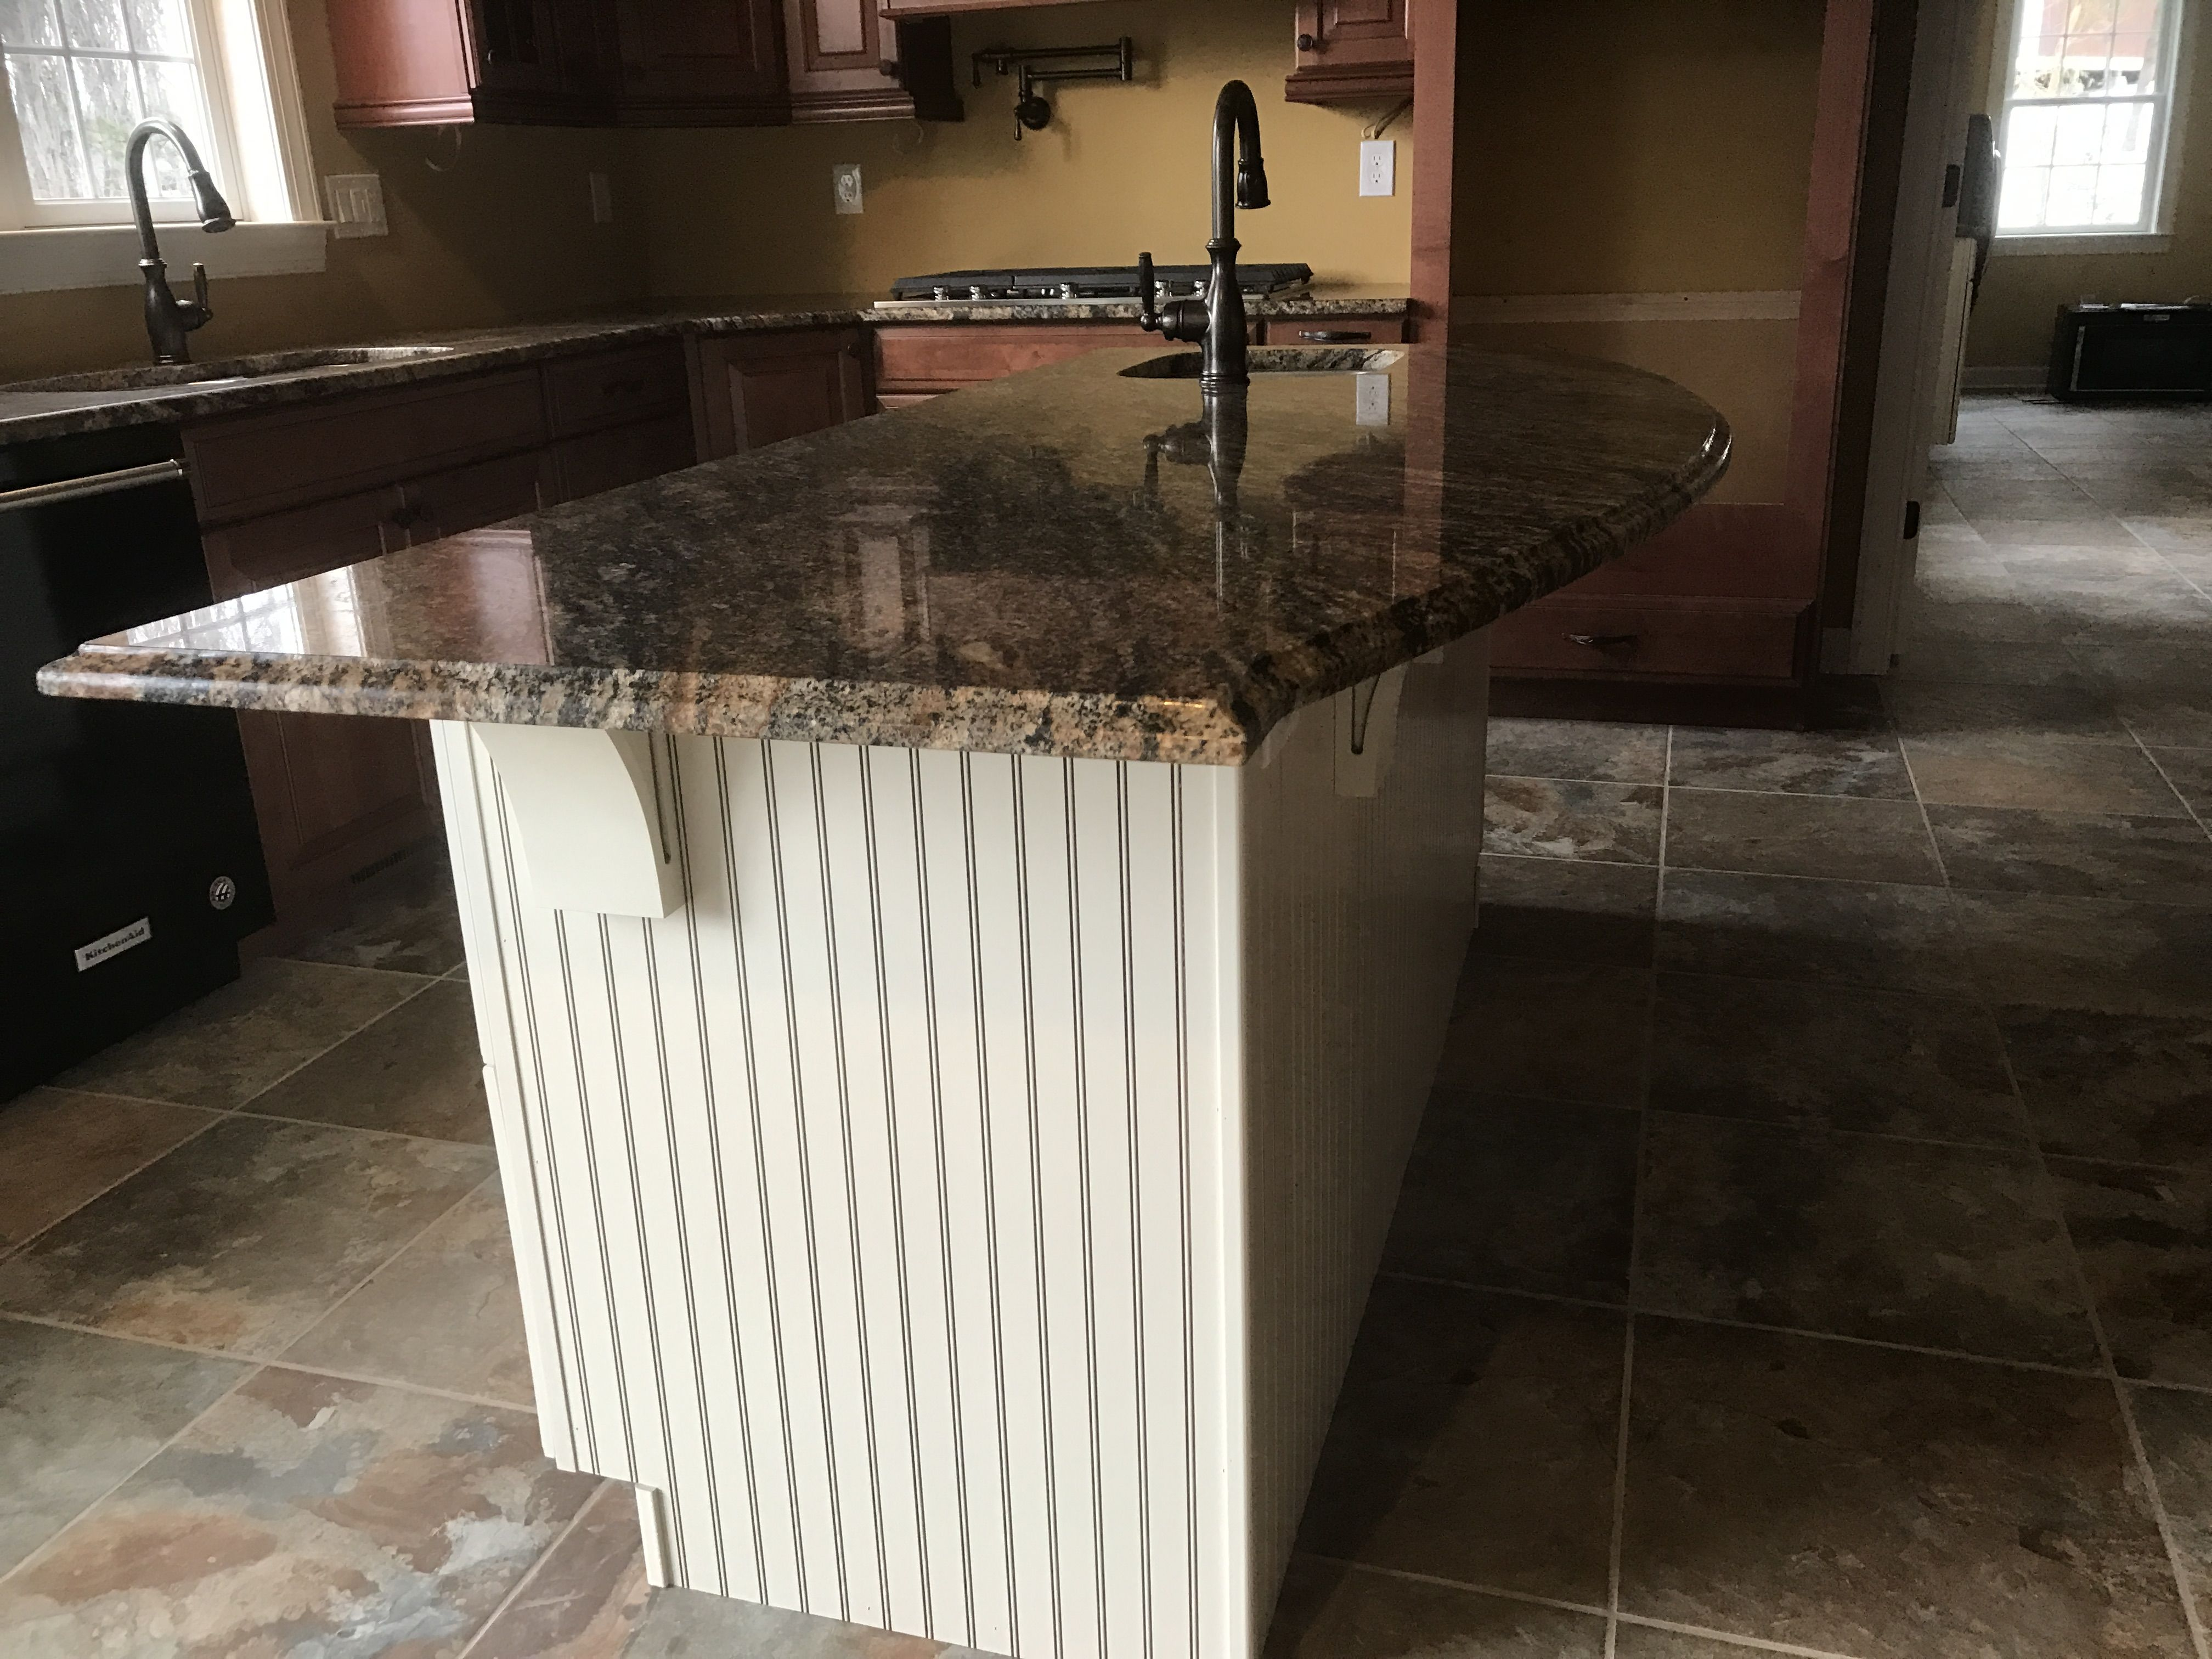 Blue barracuda granite kitchen countertop ideas - Blue Fire Granite With An Ogee Edge On The Island Exquisite